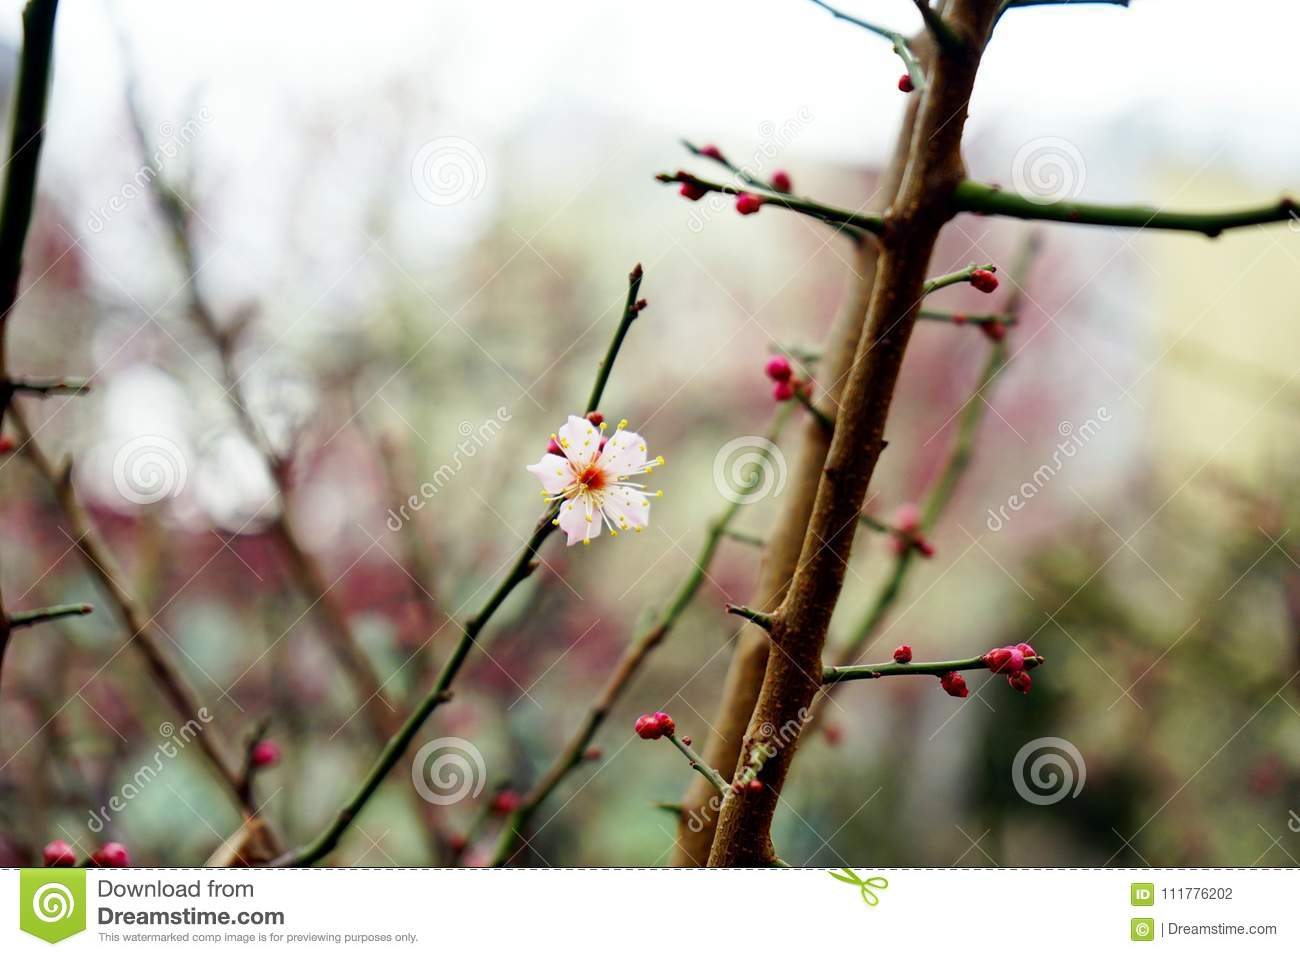 The first blooming plum flower